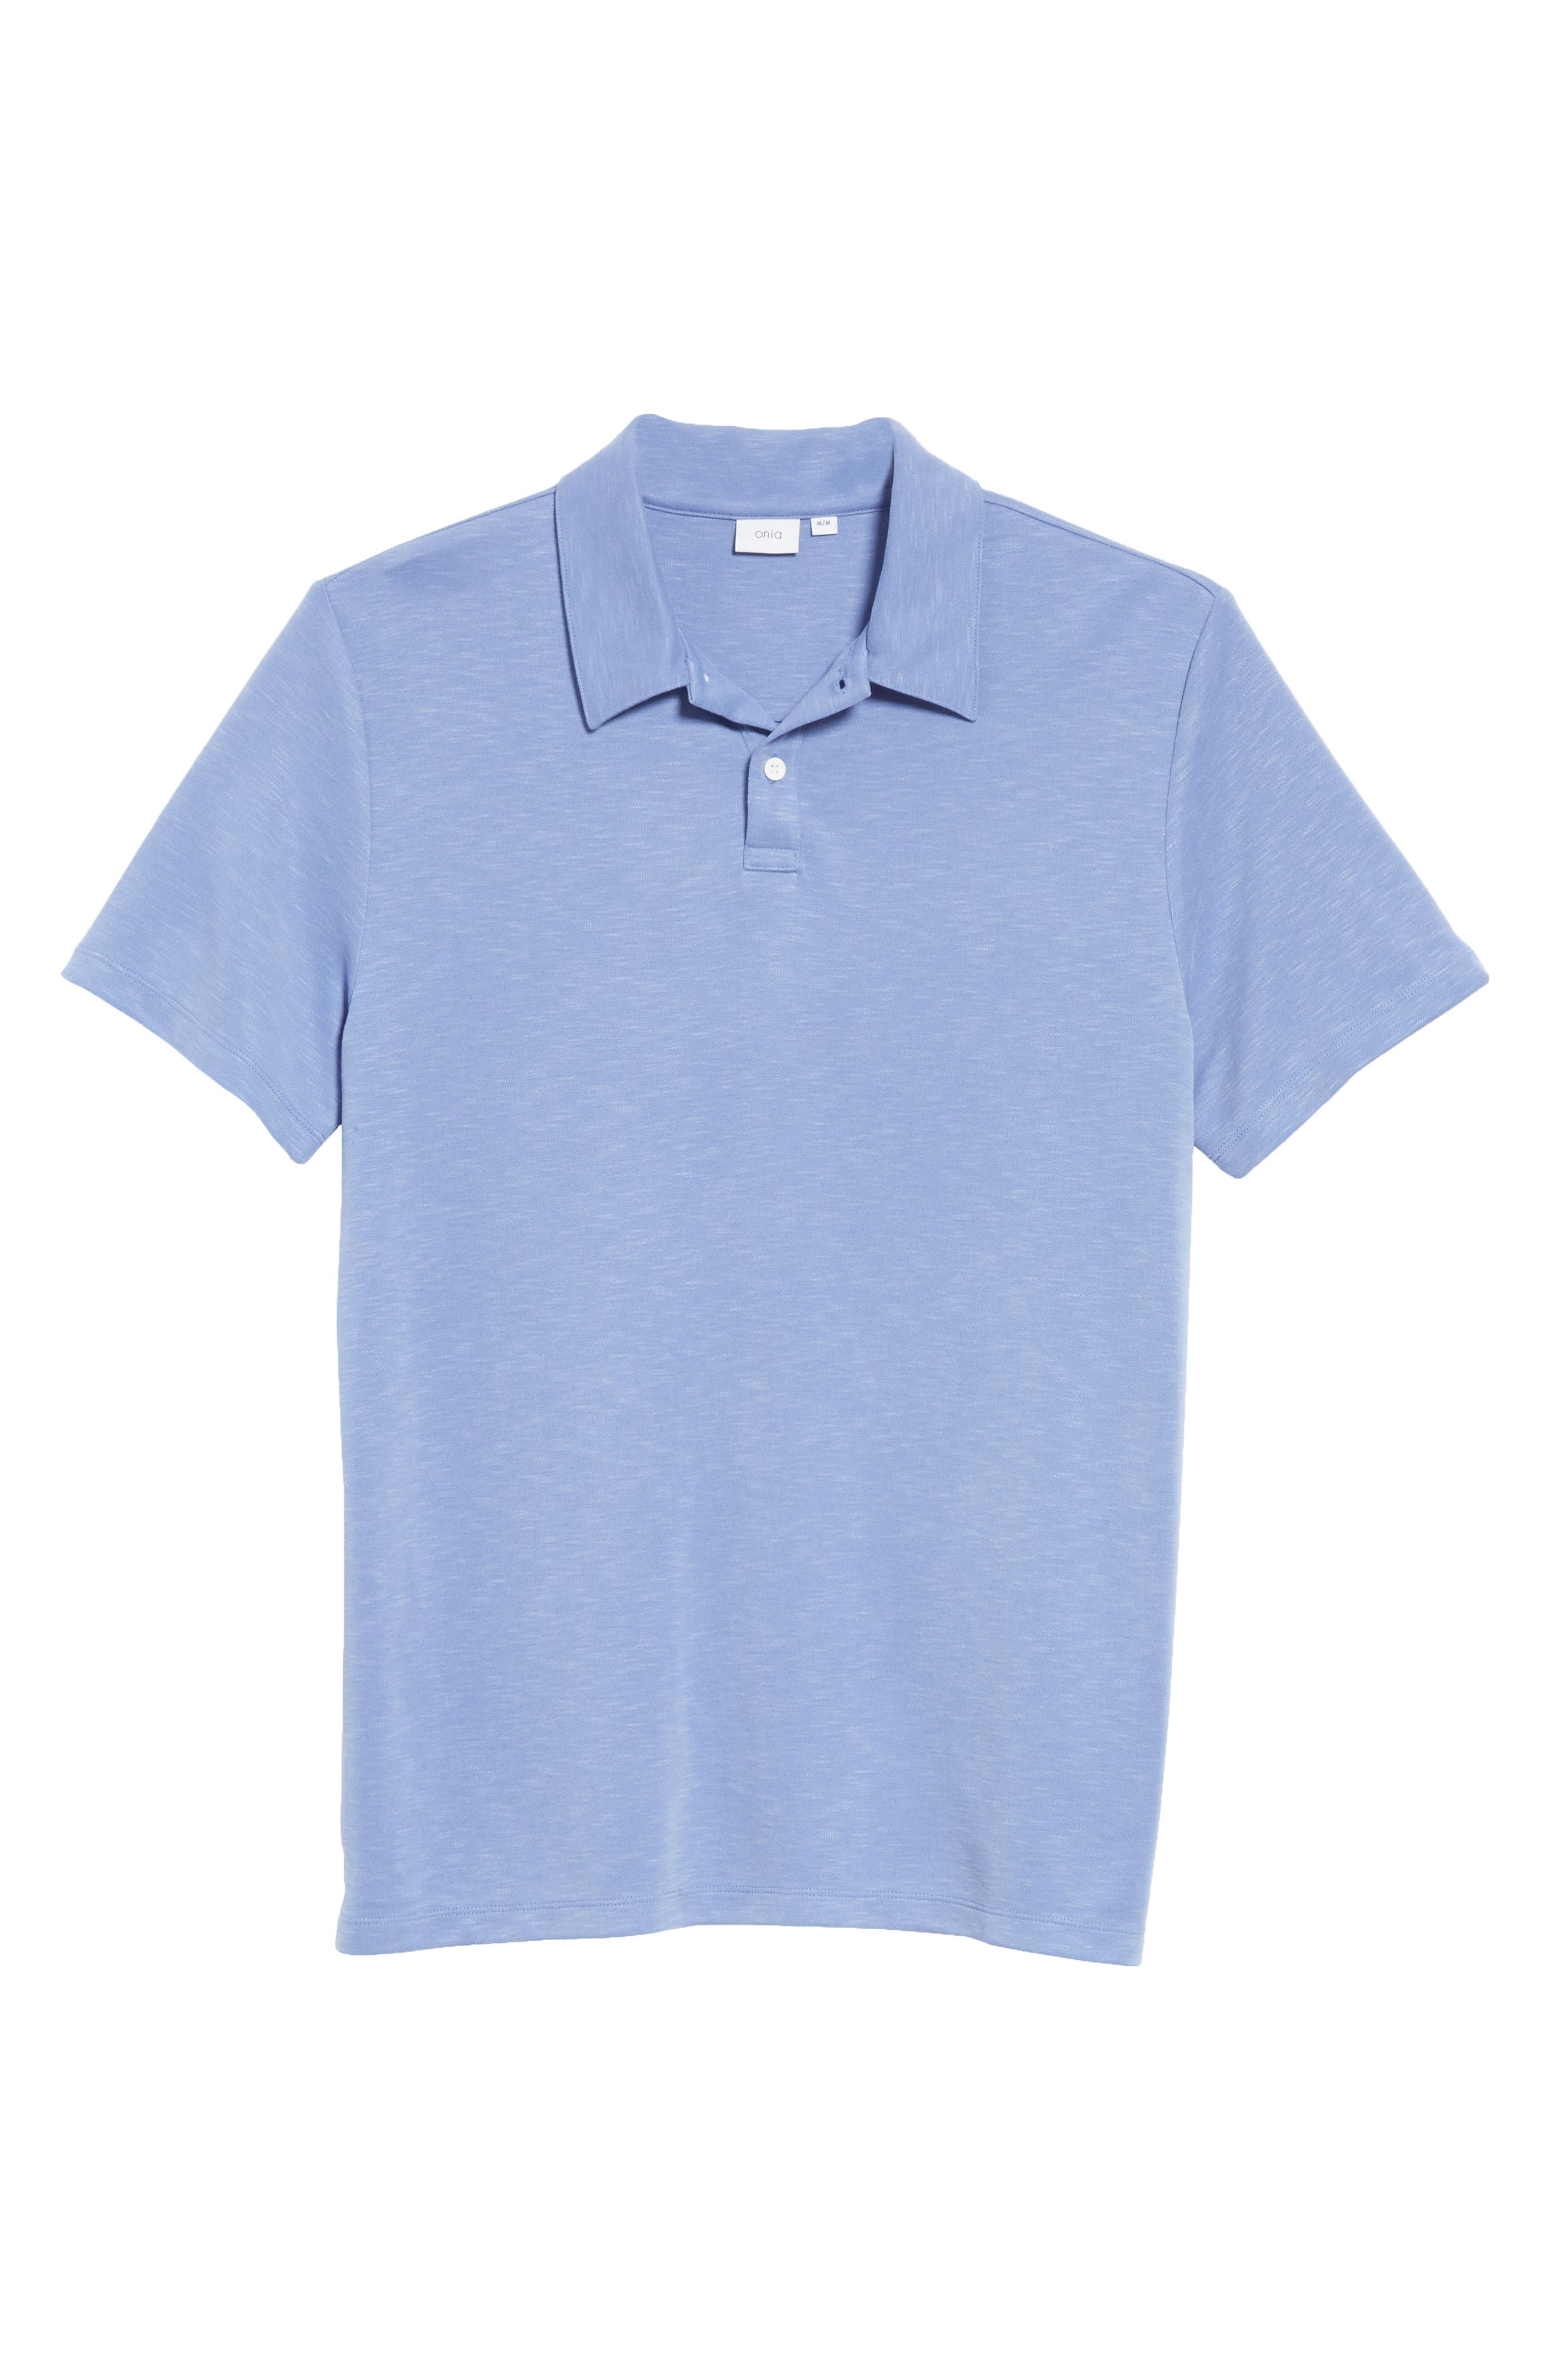 Alec Jersey Polo,                             Alternate thumbnail 6, color,                             444